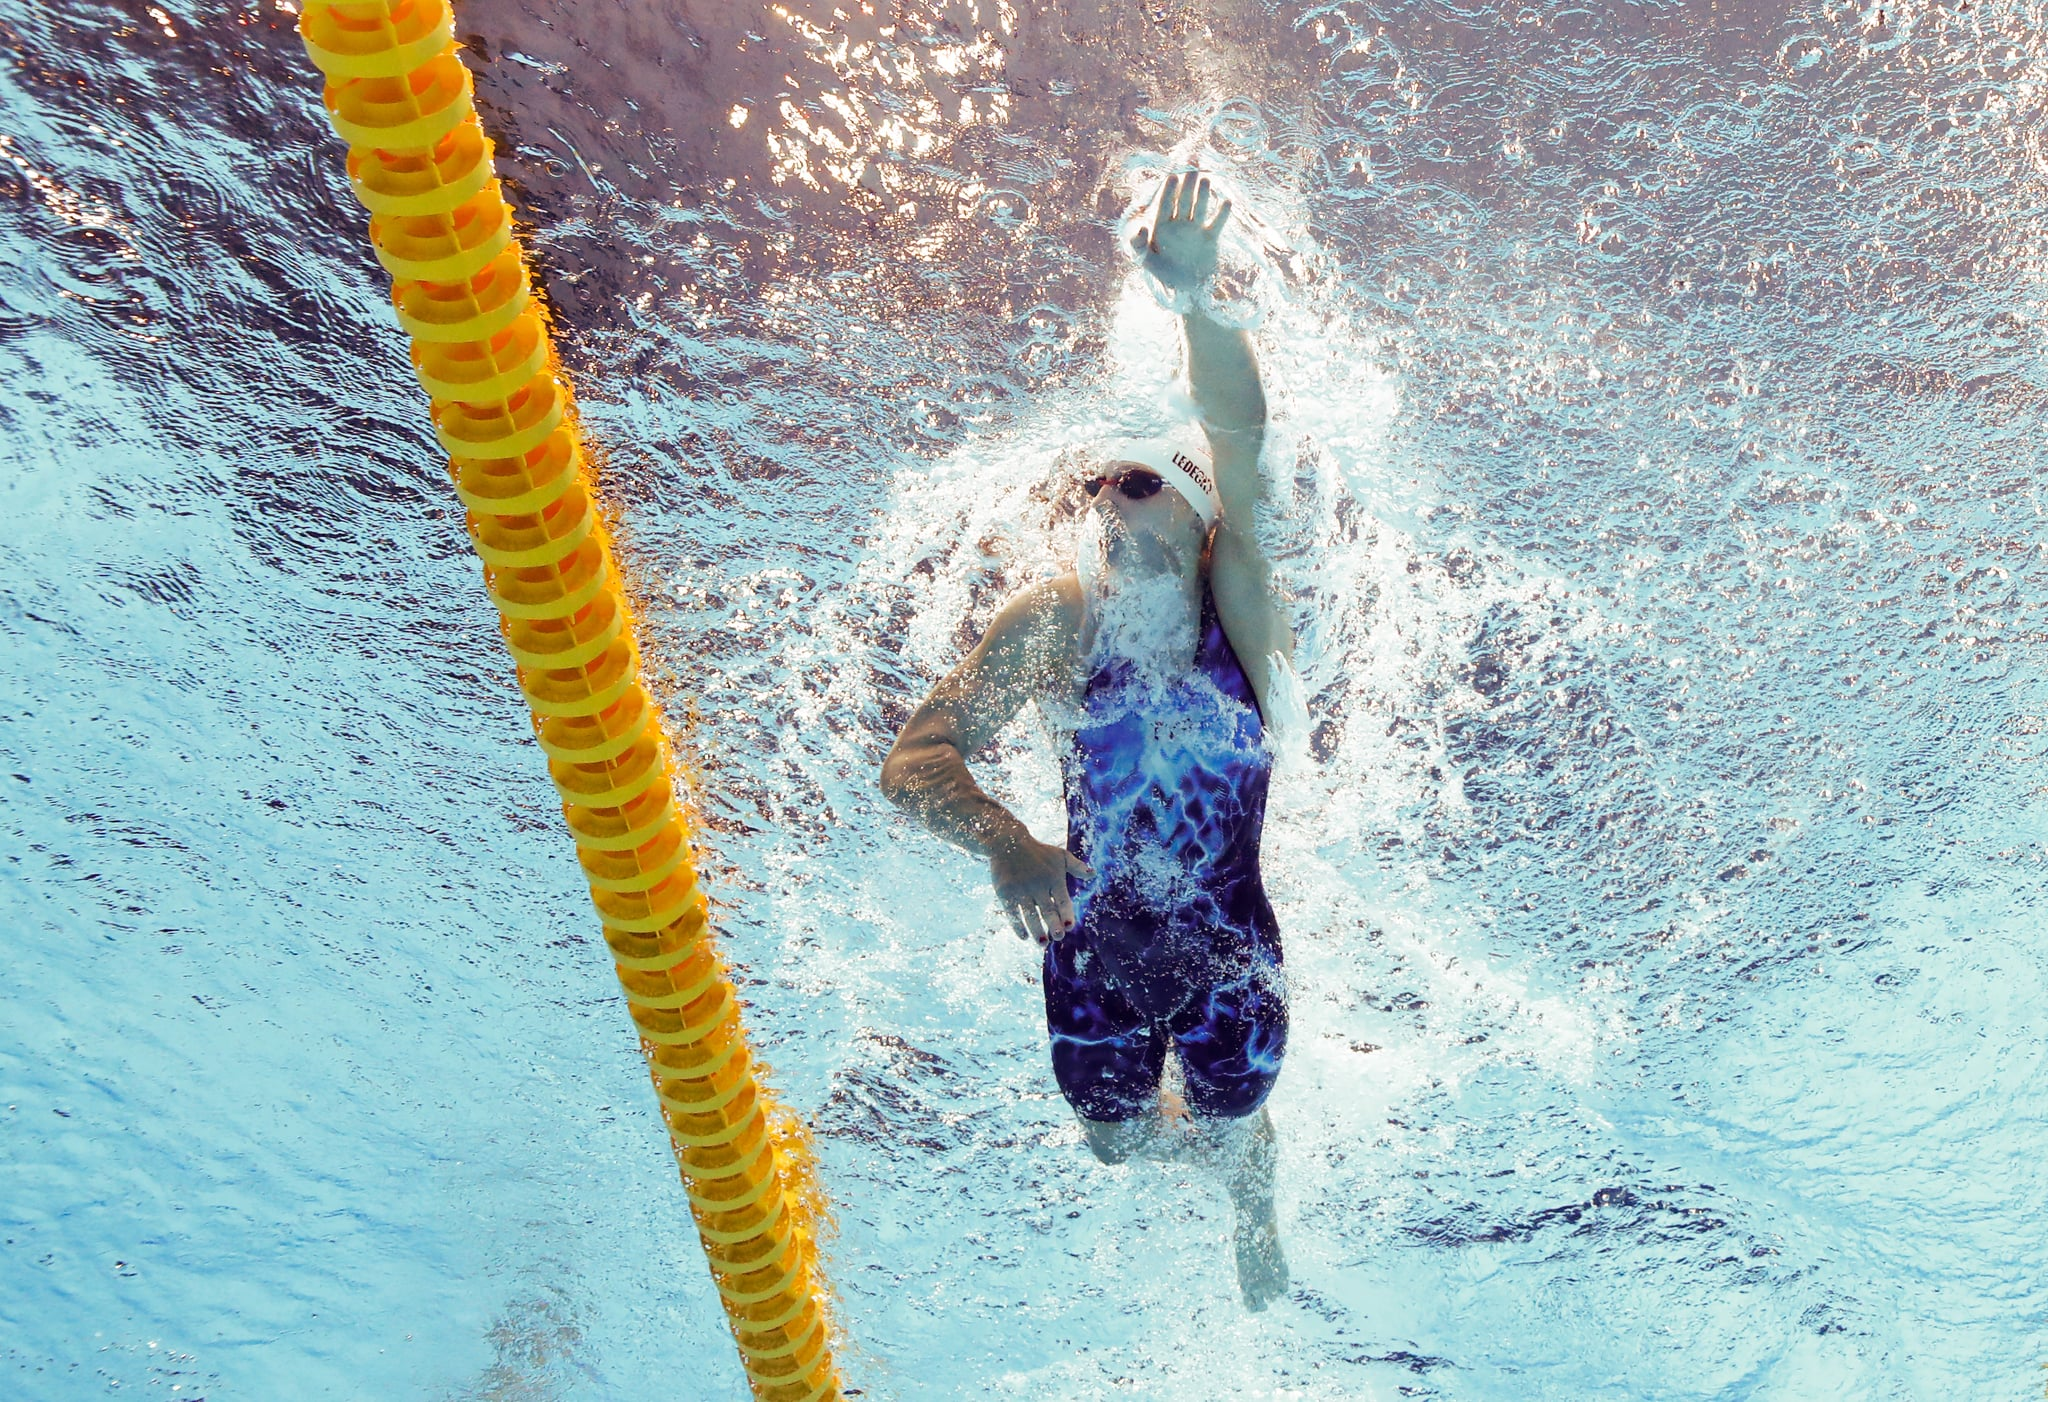 TOKYO, JAPAN - JULY 26: Katie Ledecky of Team United States competes in heat five of the Women's 1500m Freestyle on day three of the Tokyo 2020 Olympic Games at Tokyo Aquatics Centre on July 26, 2021 in Tokyo, Japan. (Photo by Al Bello/Getty Images)